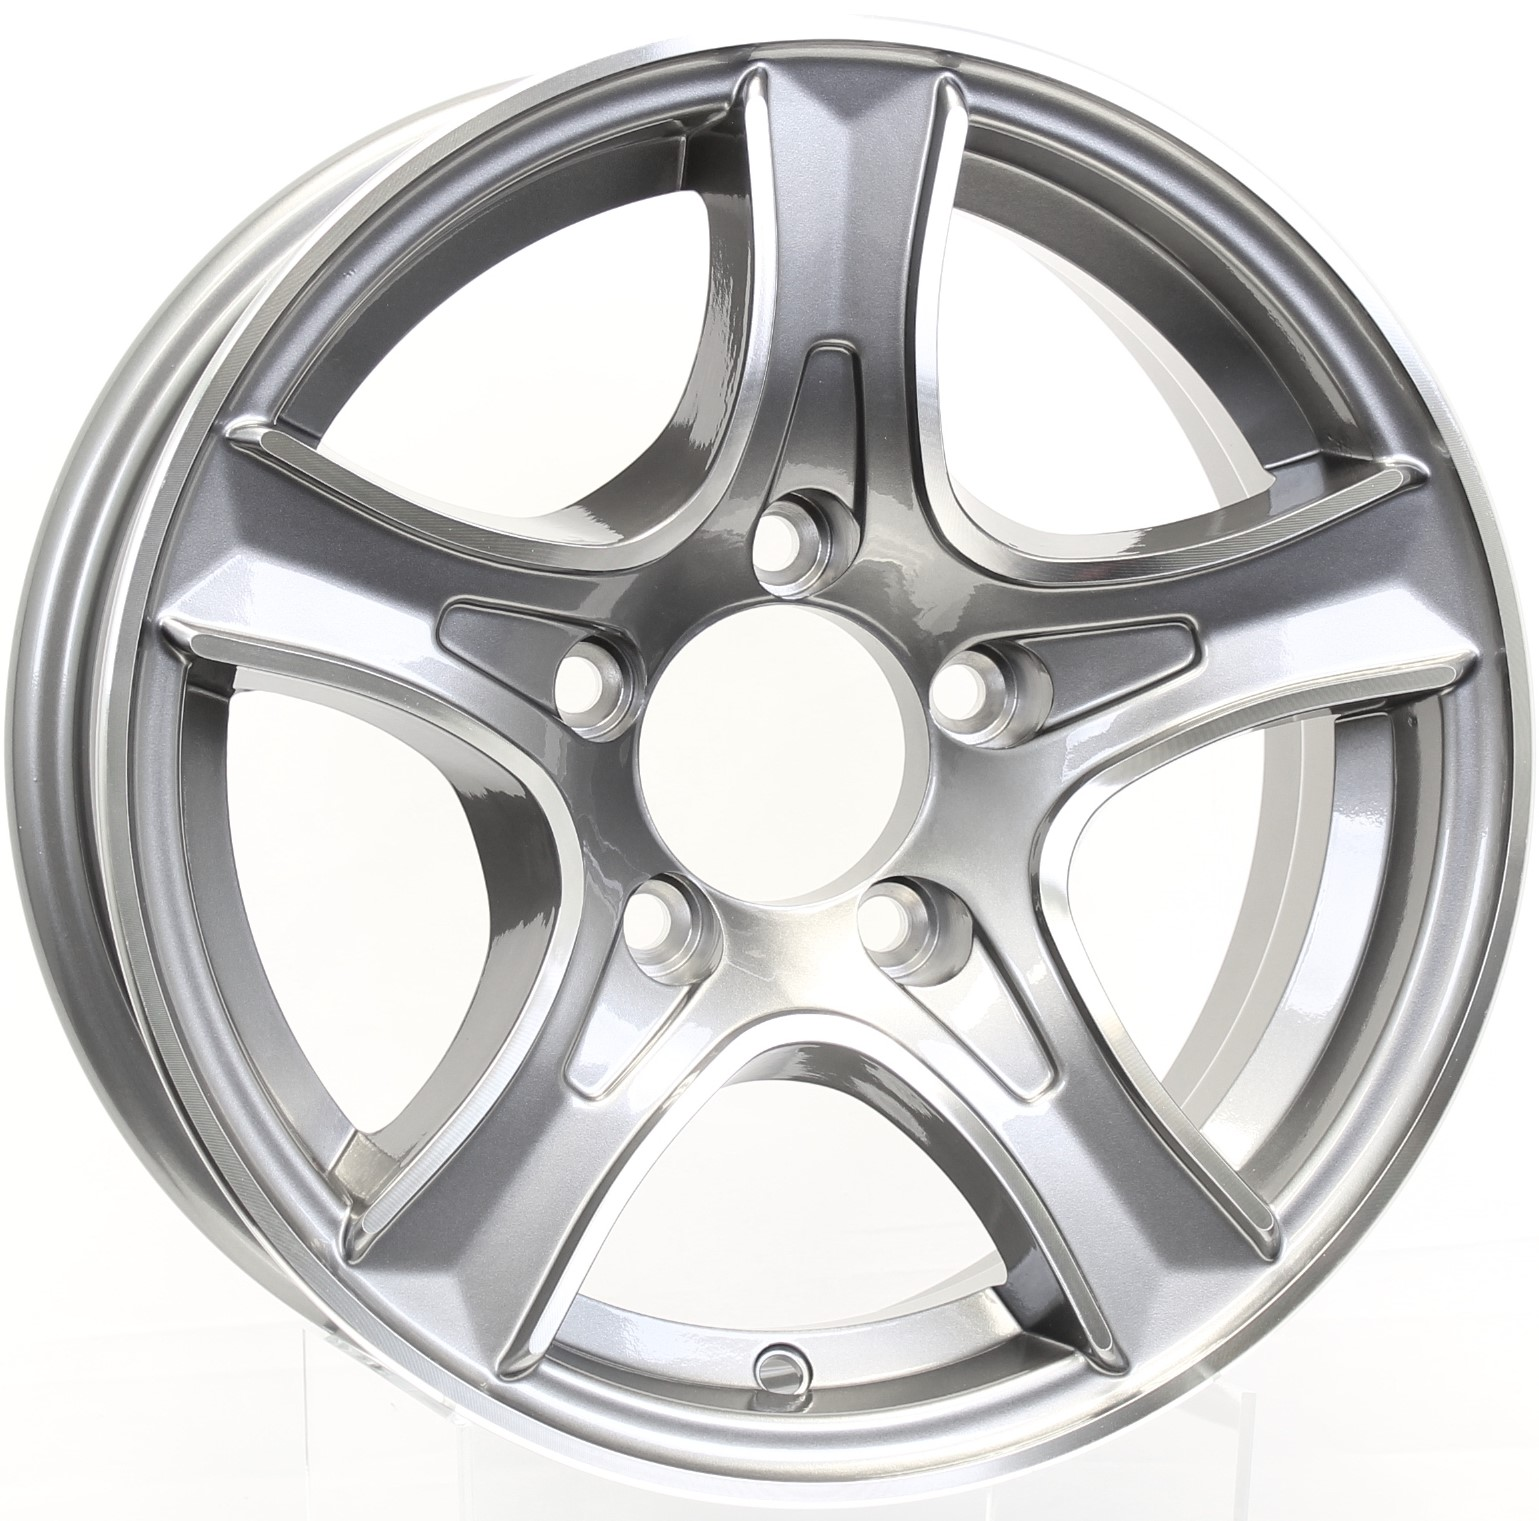 Thoroughbred 14x5.5 5-4.5 Gunmetal Aluminum Trailer Wheel Image